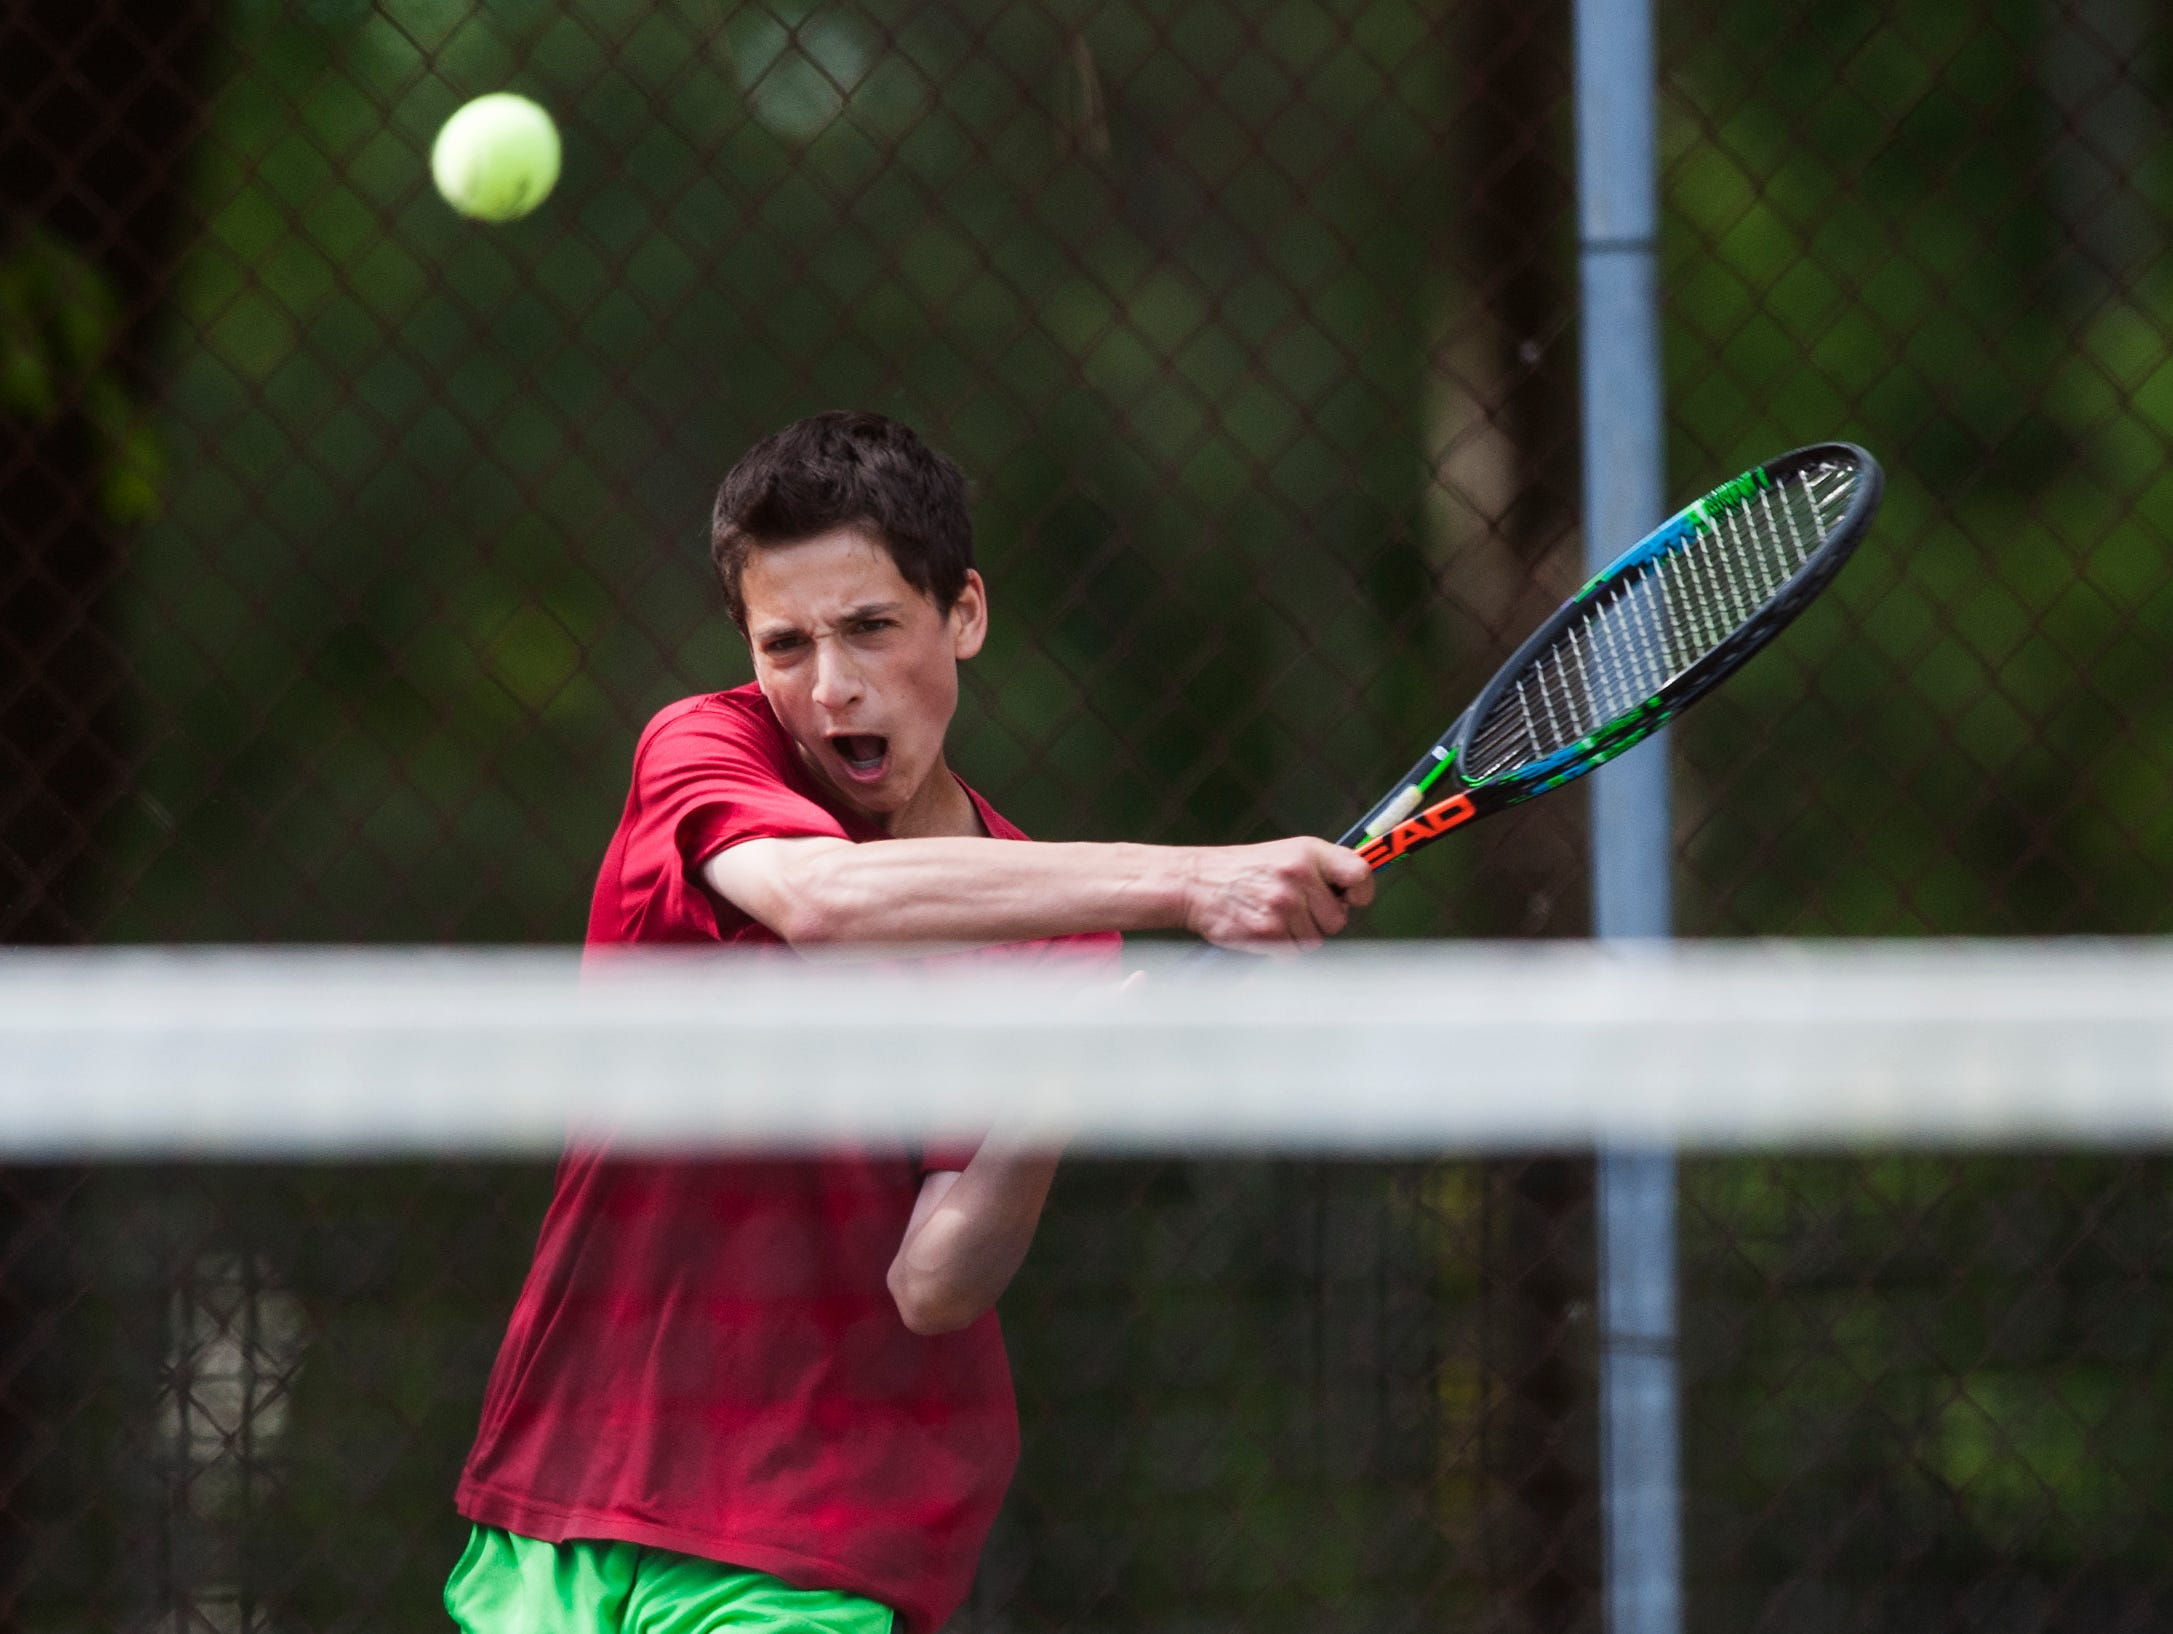 South Burlington sophomore Gabe Katz hits the ball during the Vermont high school boys tennis individual championships at Leddy Park on Saturday, May 23.